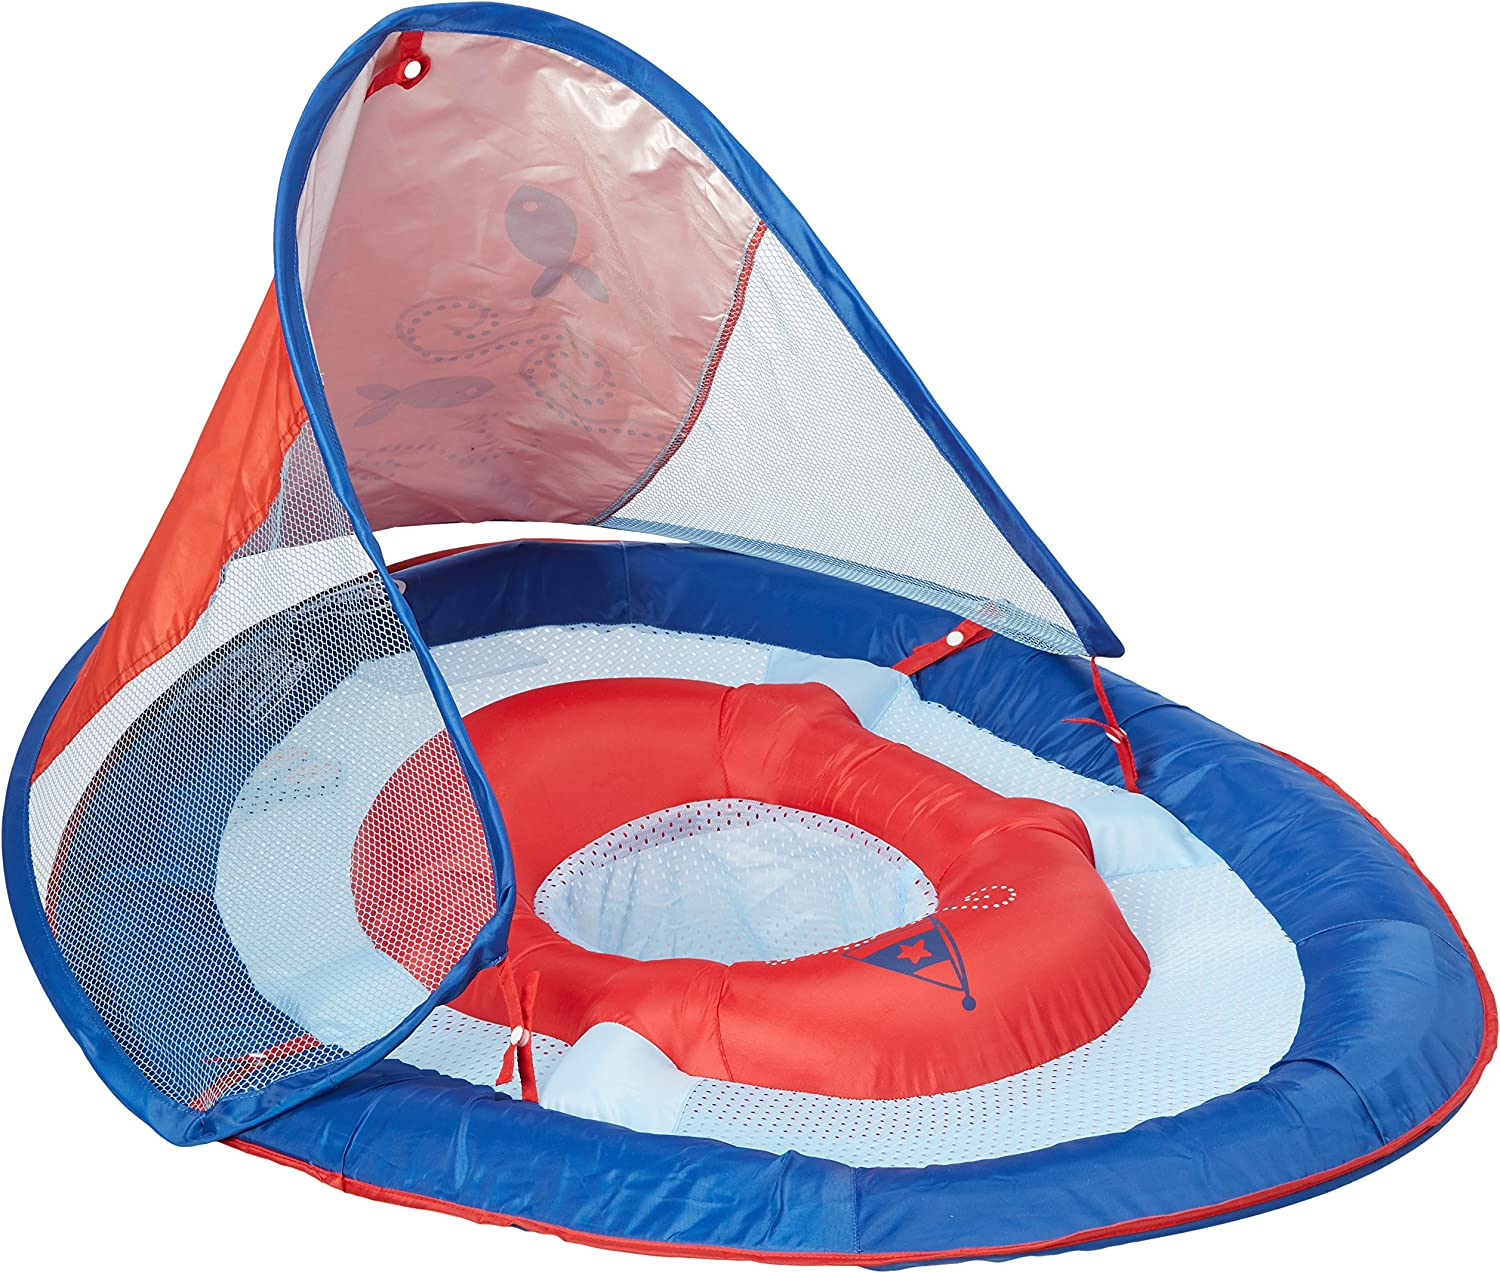 Swimways Baby Spring Float Canopy Boat 9-24 Months -Solid